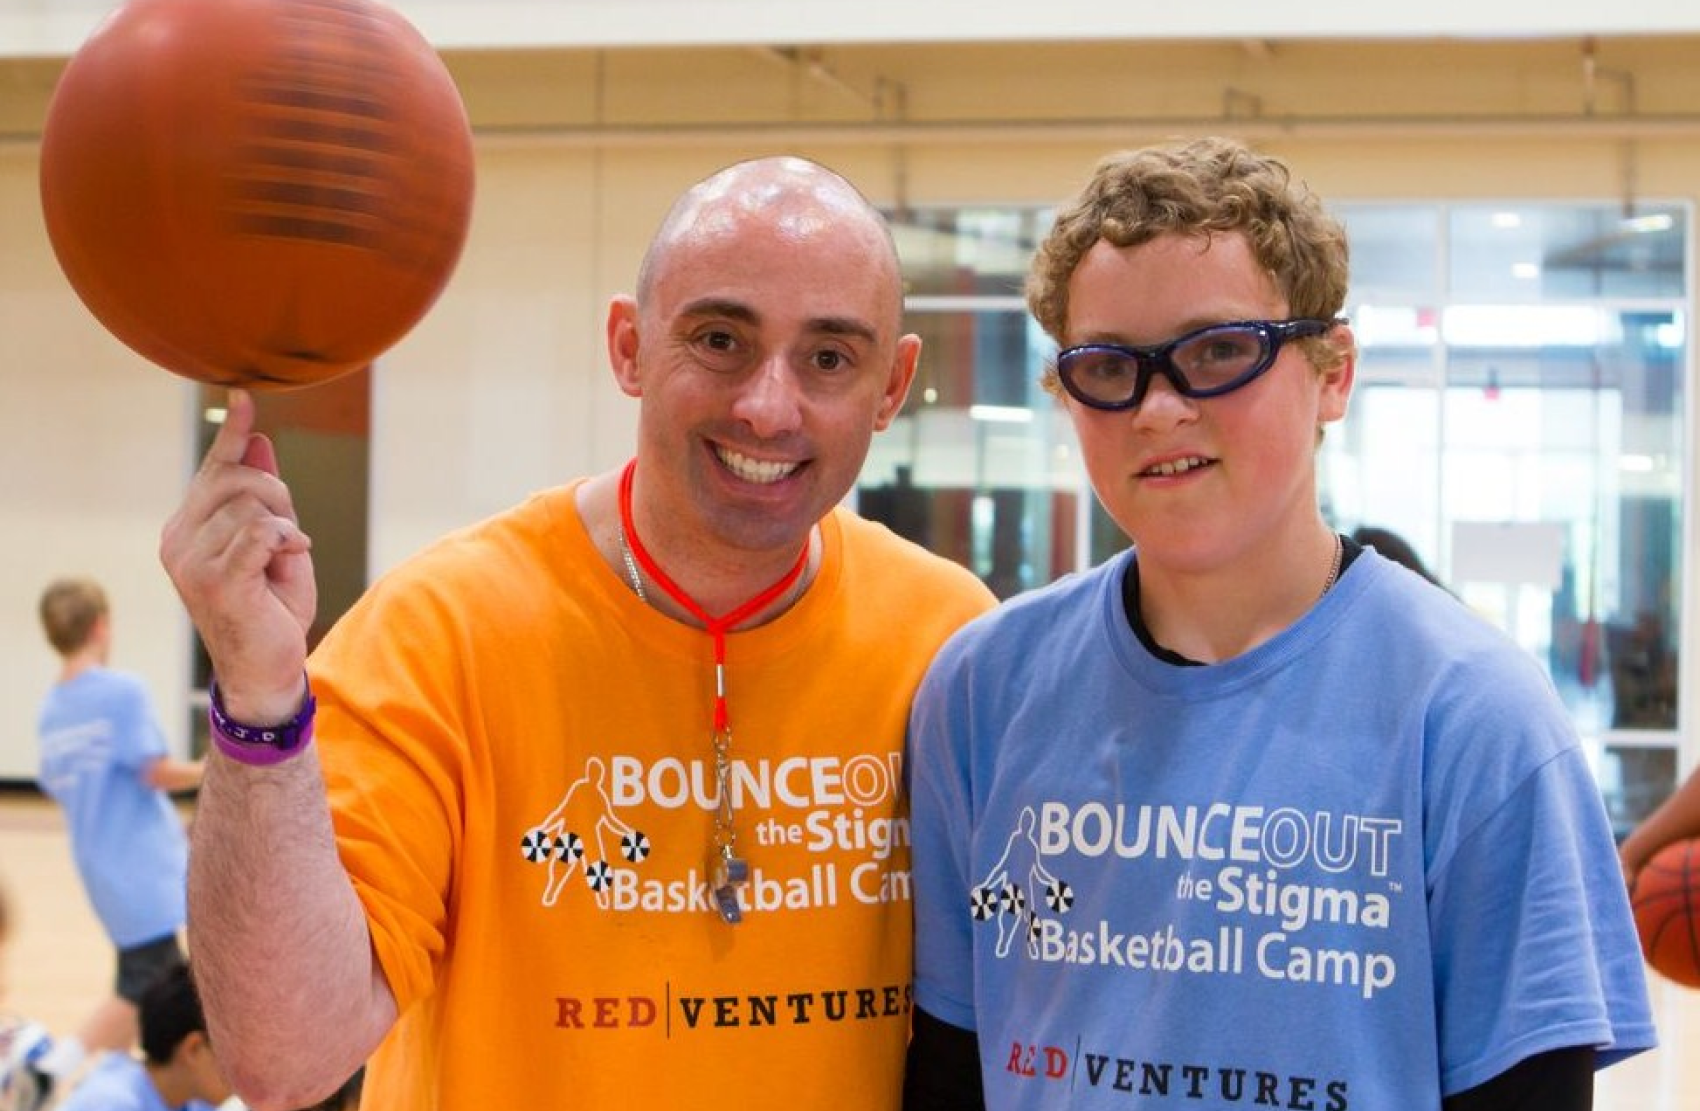 Bounce out the stigma basketball camps